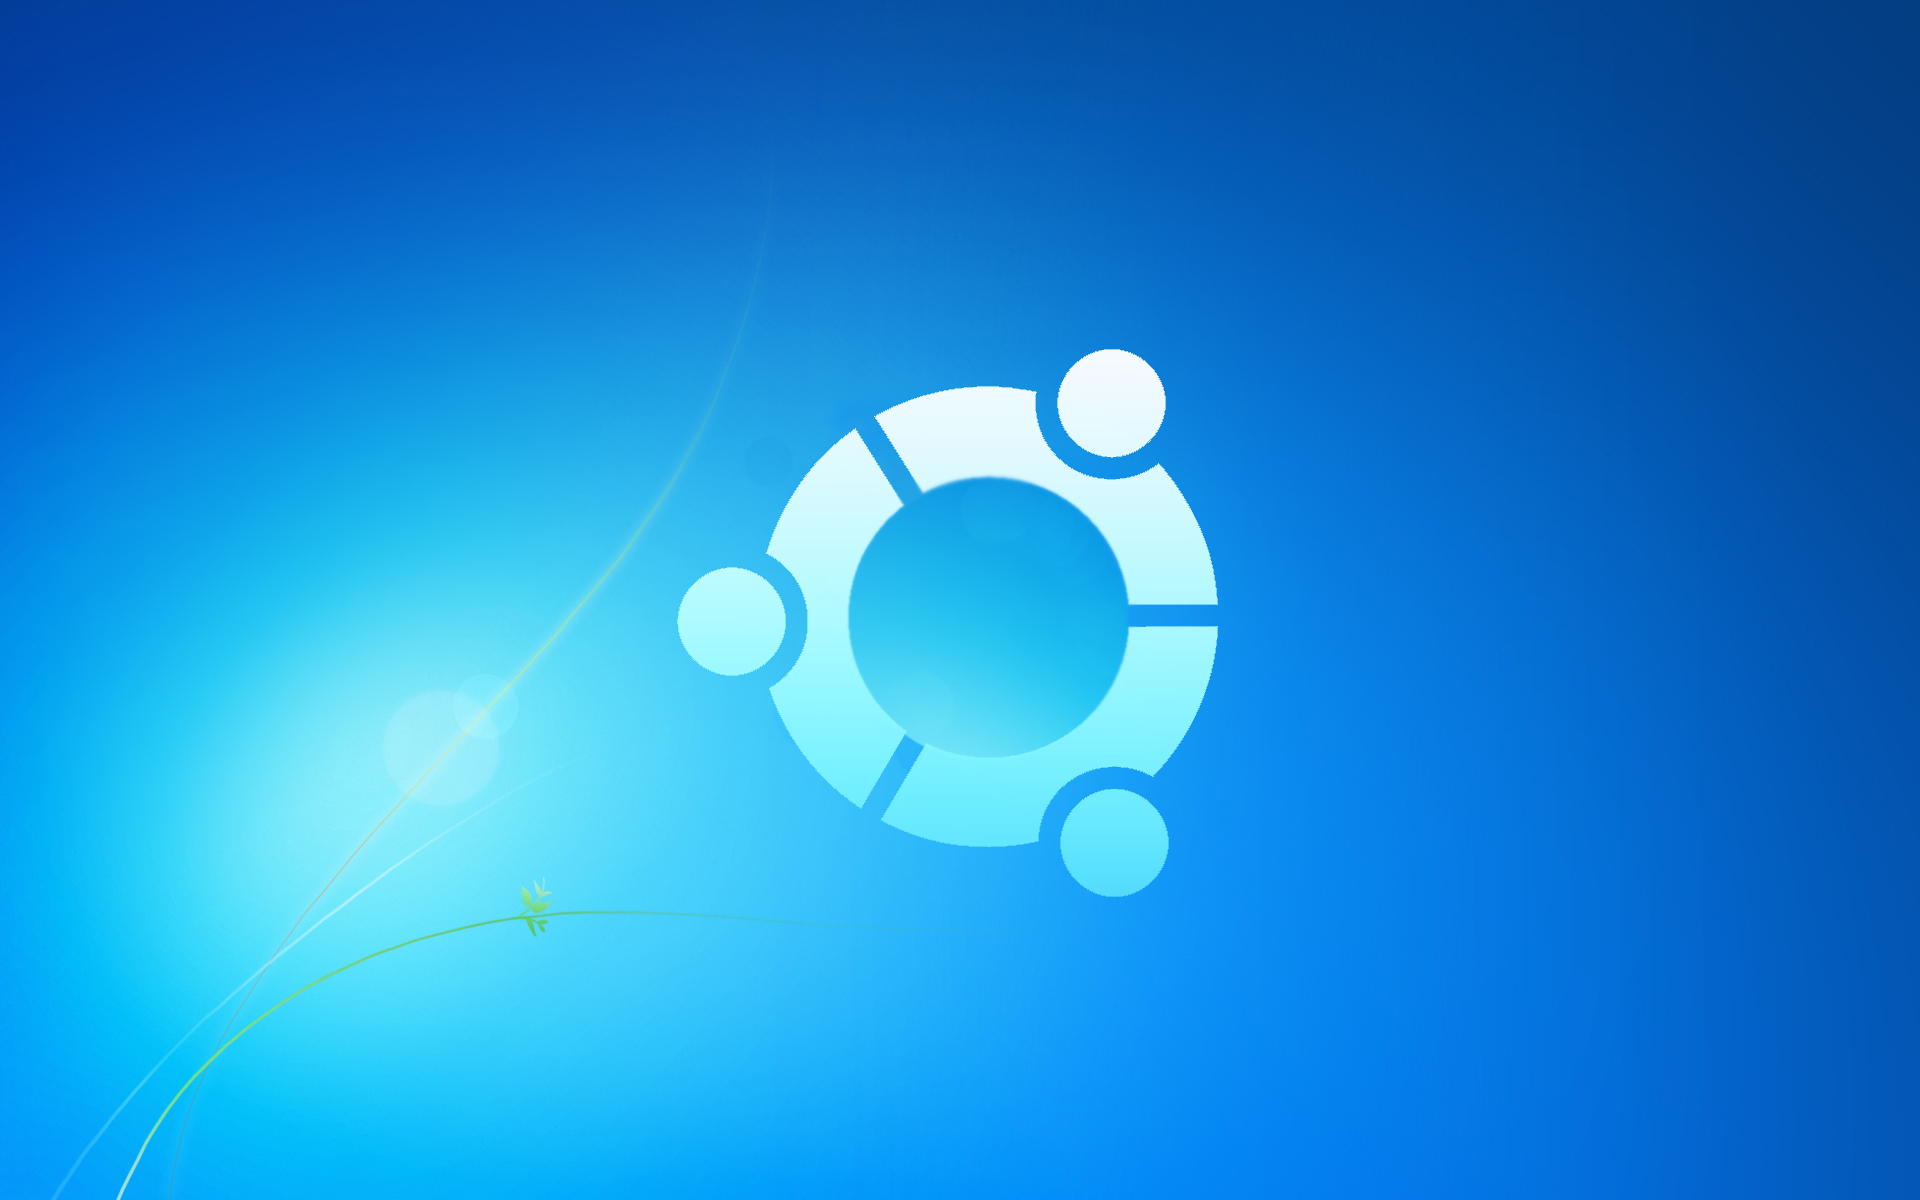 Ubuntu Windows 7 Style Wallpapers HD Wallpapers 1920x1200